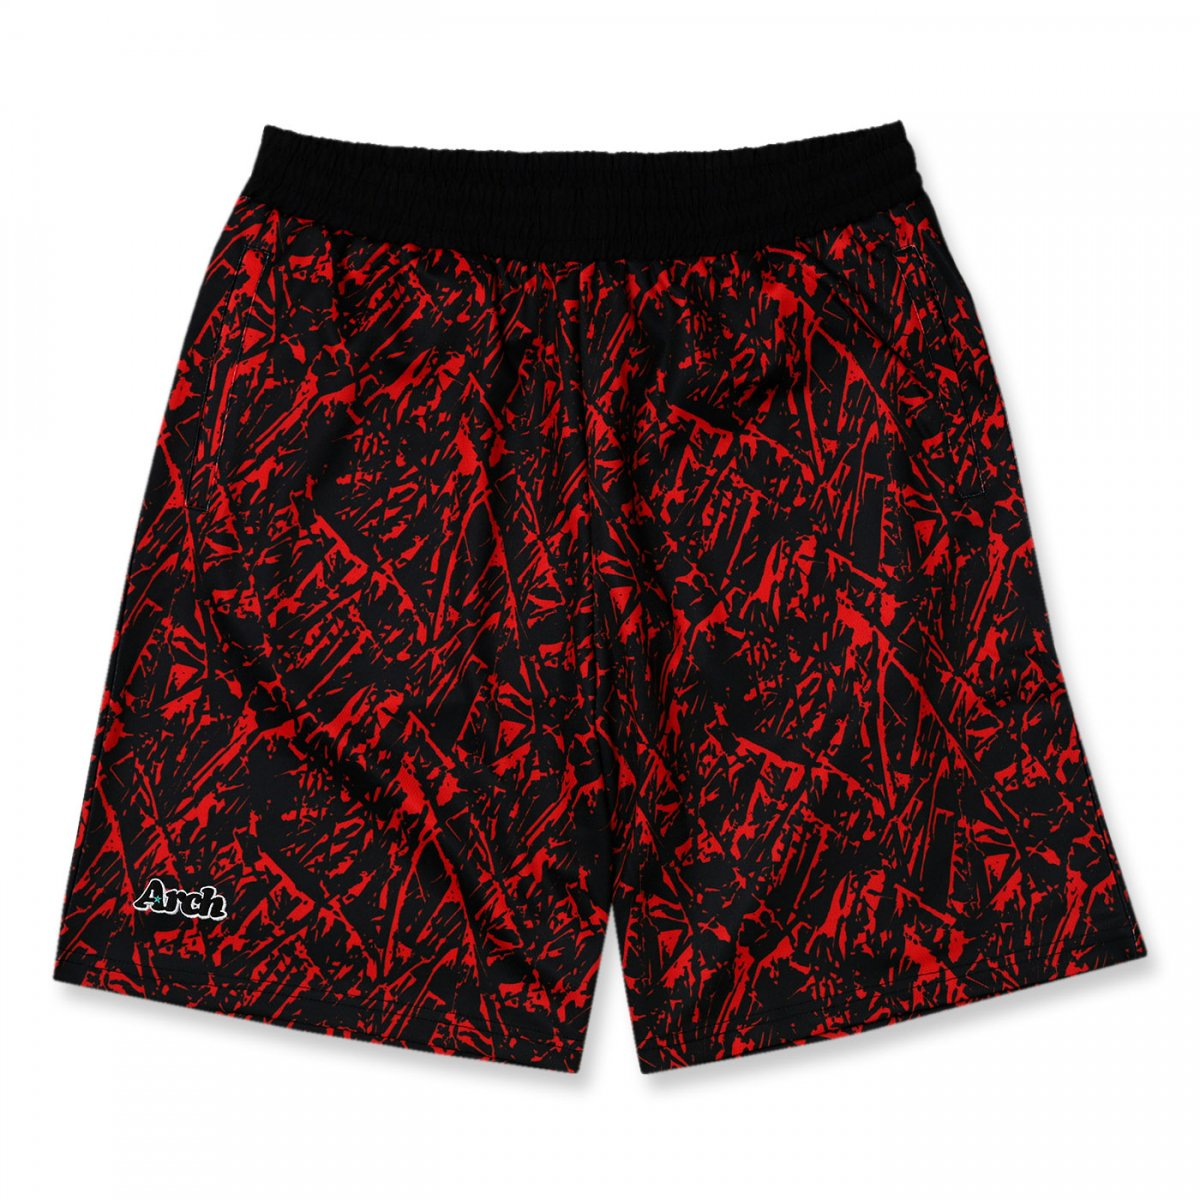 nervure shorts 【red/black】